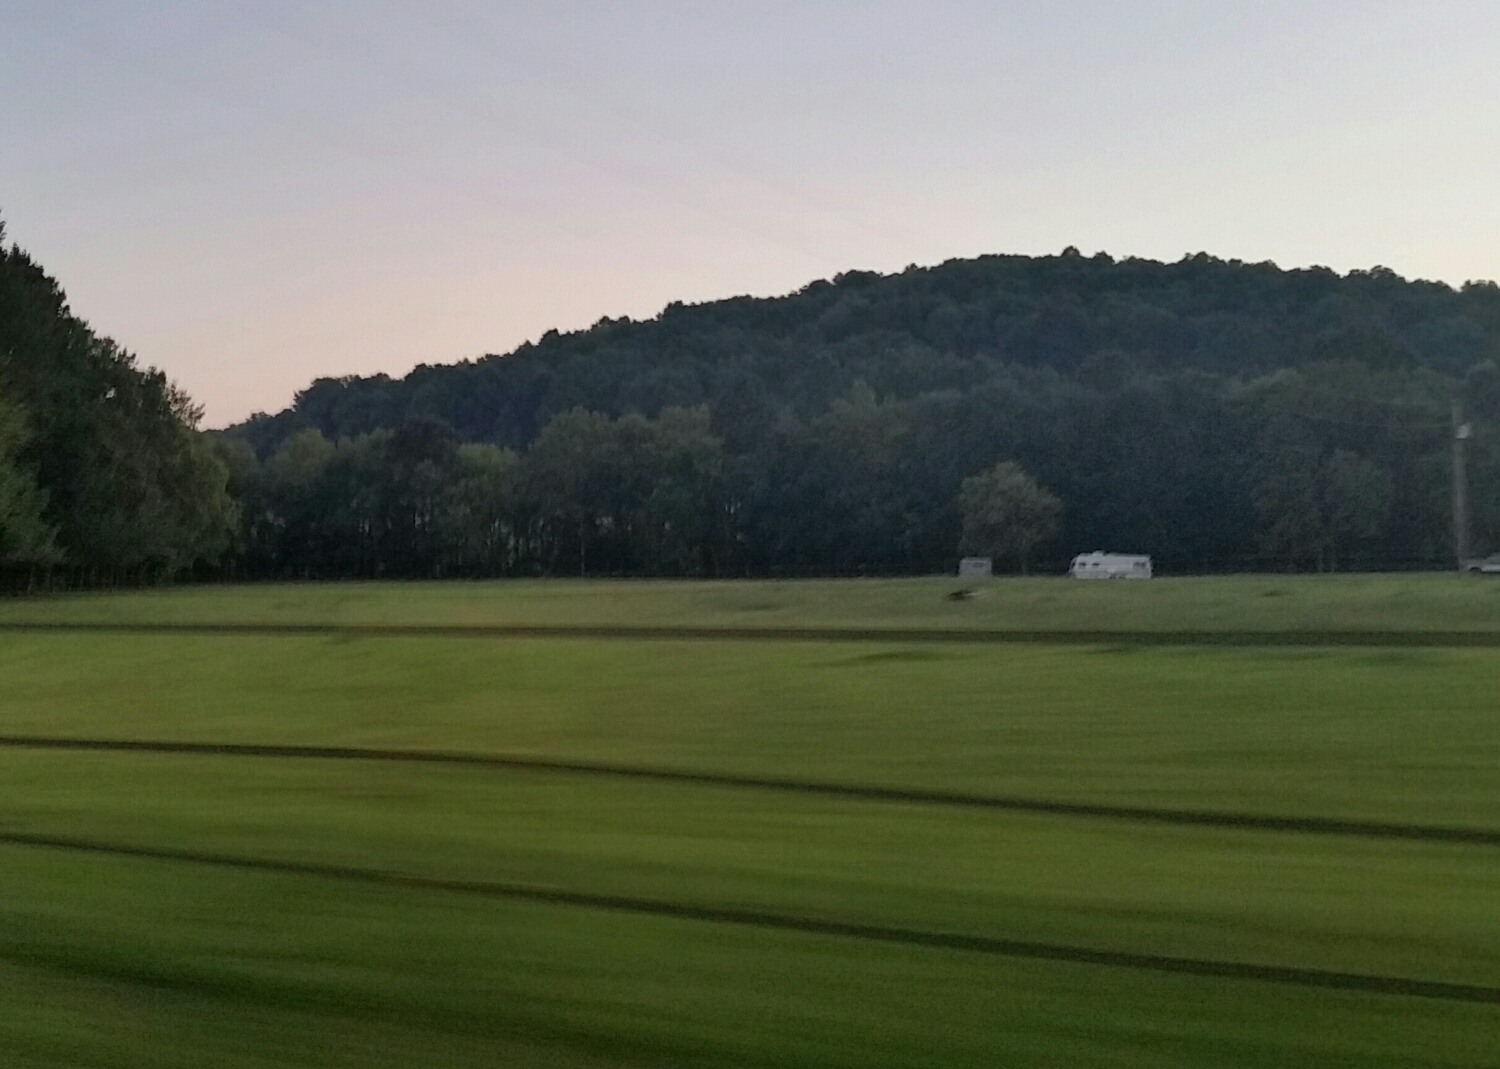 Taken on the way back, somewhere in Kentucky